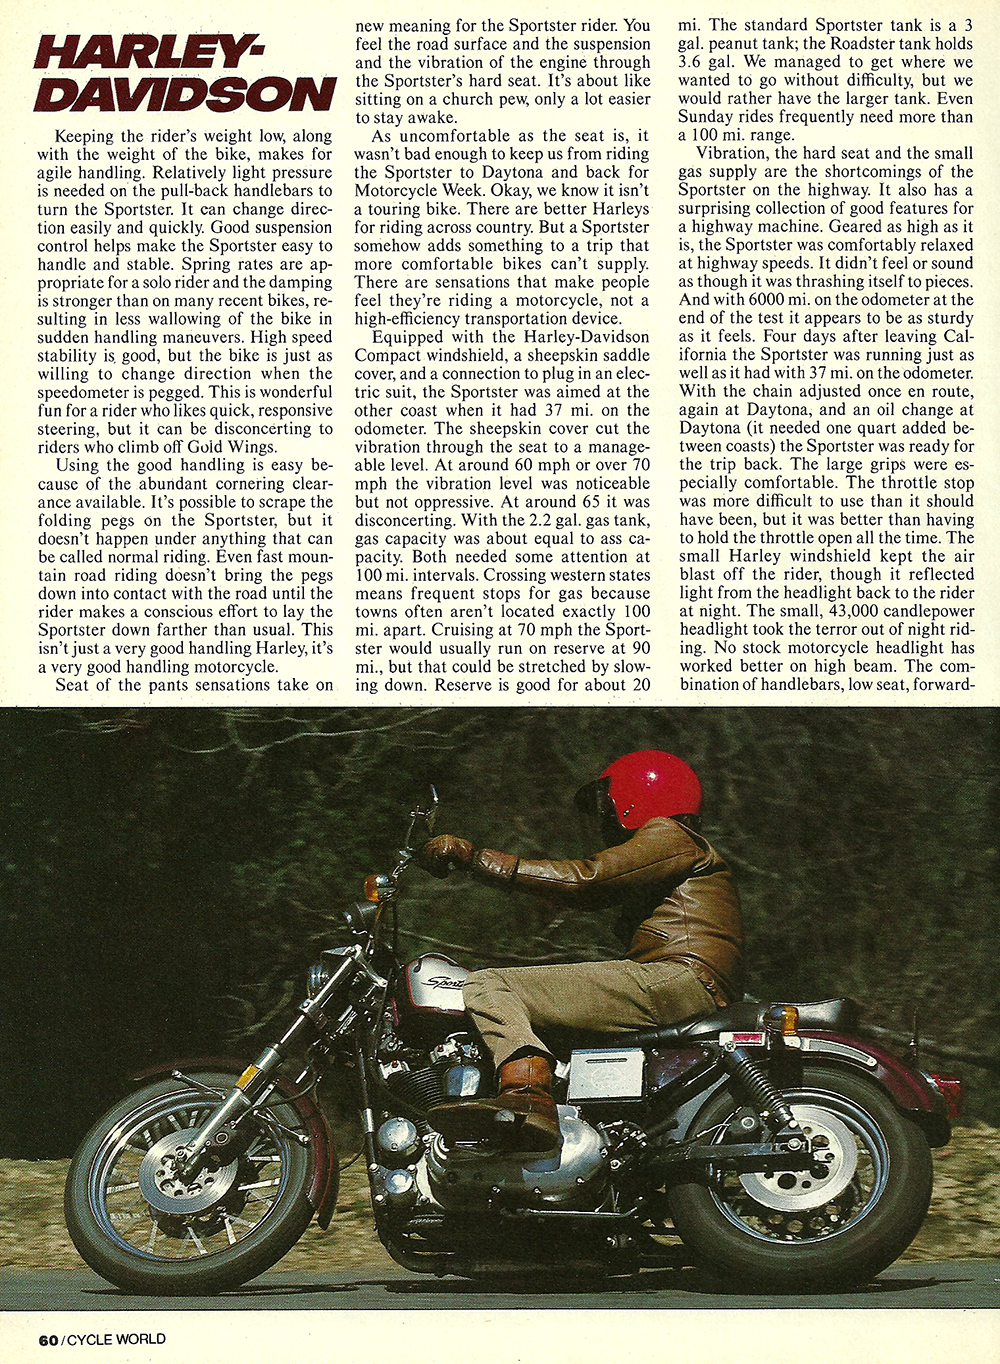 1982 Harley Davidson XLS Sportster 25th road test 03.jpg